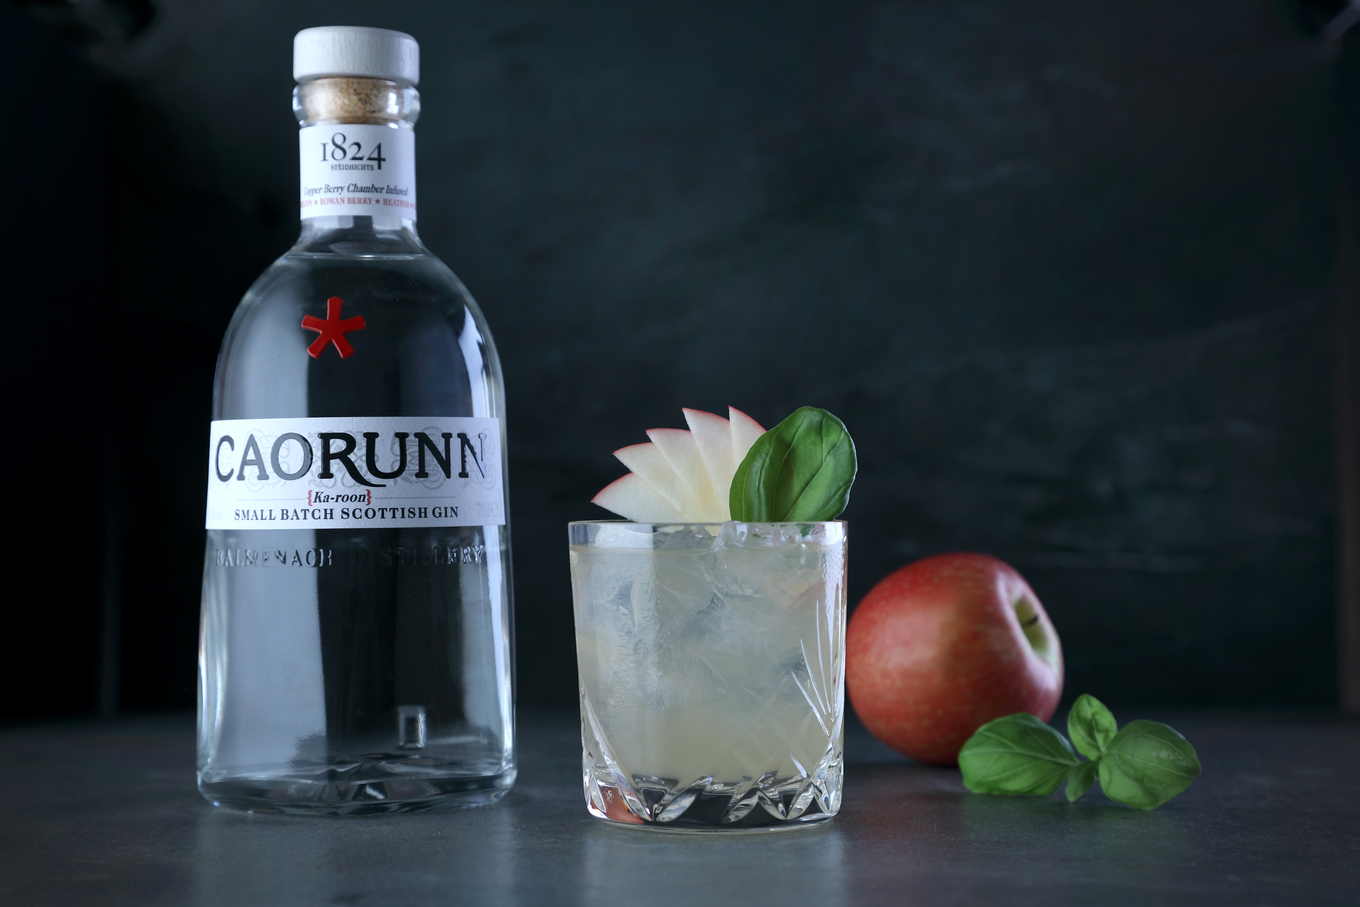 Caorunn's 10 Year Switch cocktail competition image 1